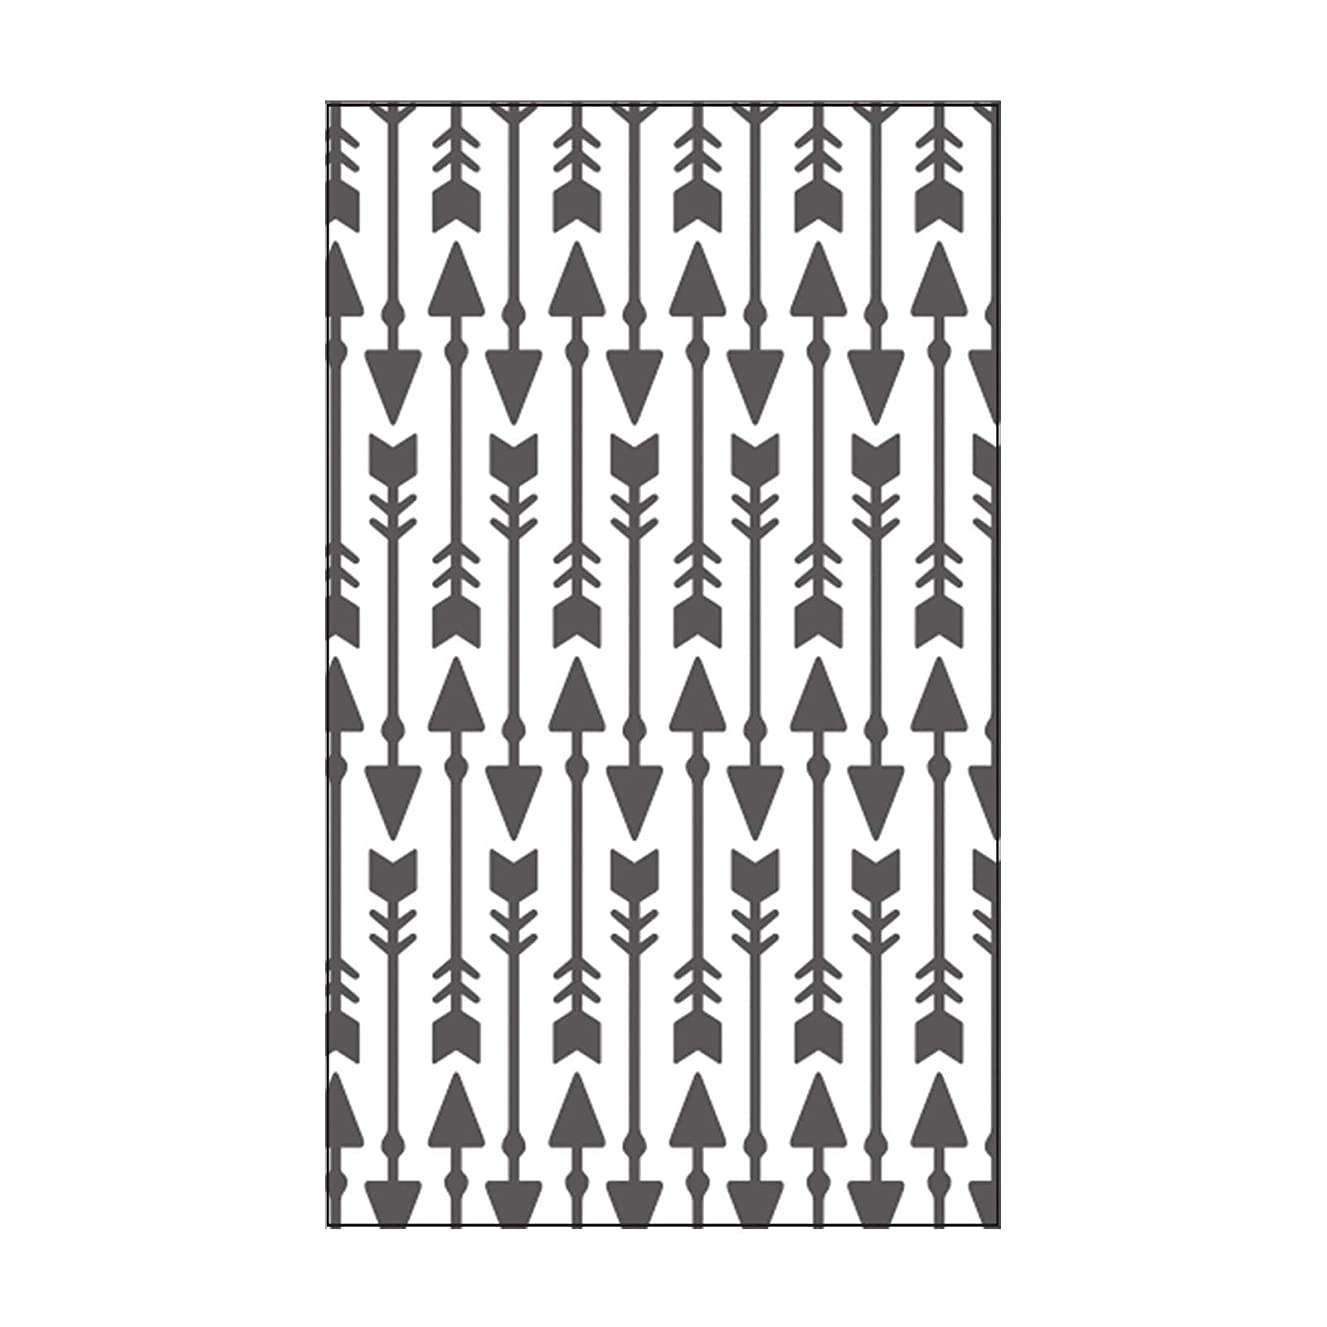 Vaessen Creative Mini Embossing Folder, Ornate Arrows, for Adding Texture and Dimension to Scrapbook Pages, Cards and Other Papercraft Projects, 3 x 5 inches